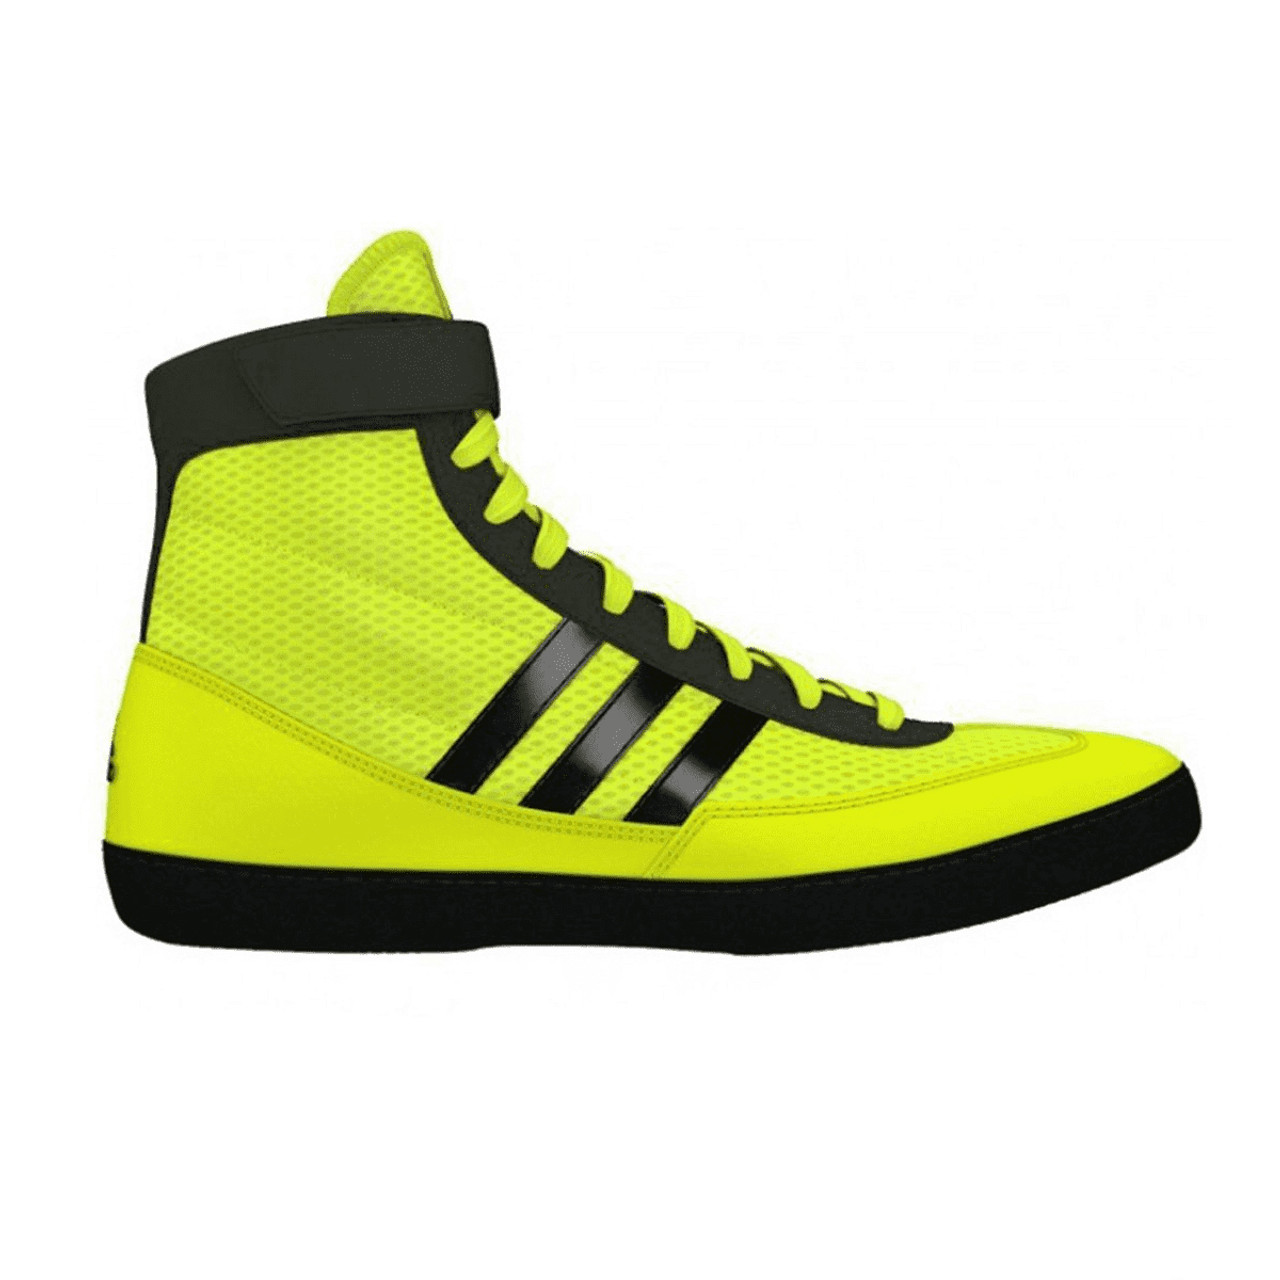 ff2d7aacb12 Adidas Combat Speed 4 Senior Wrestling Shoes S77933 - Yellow